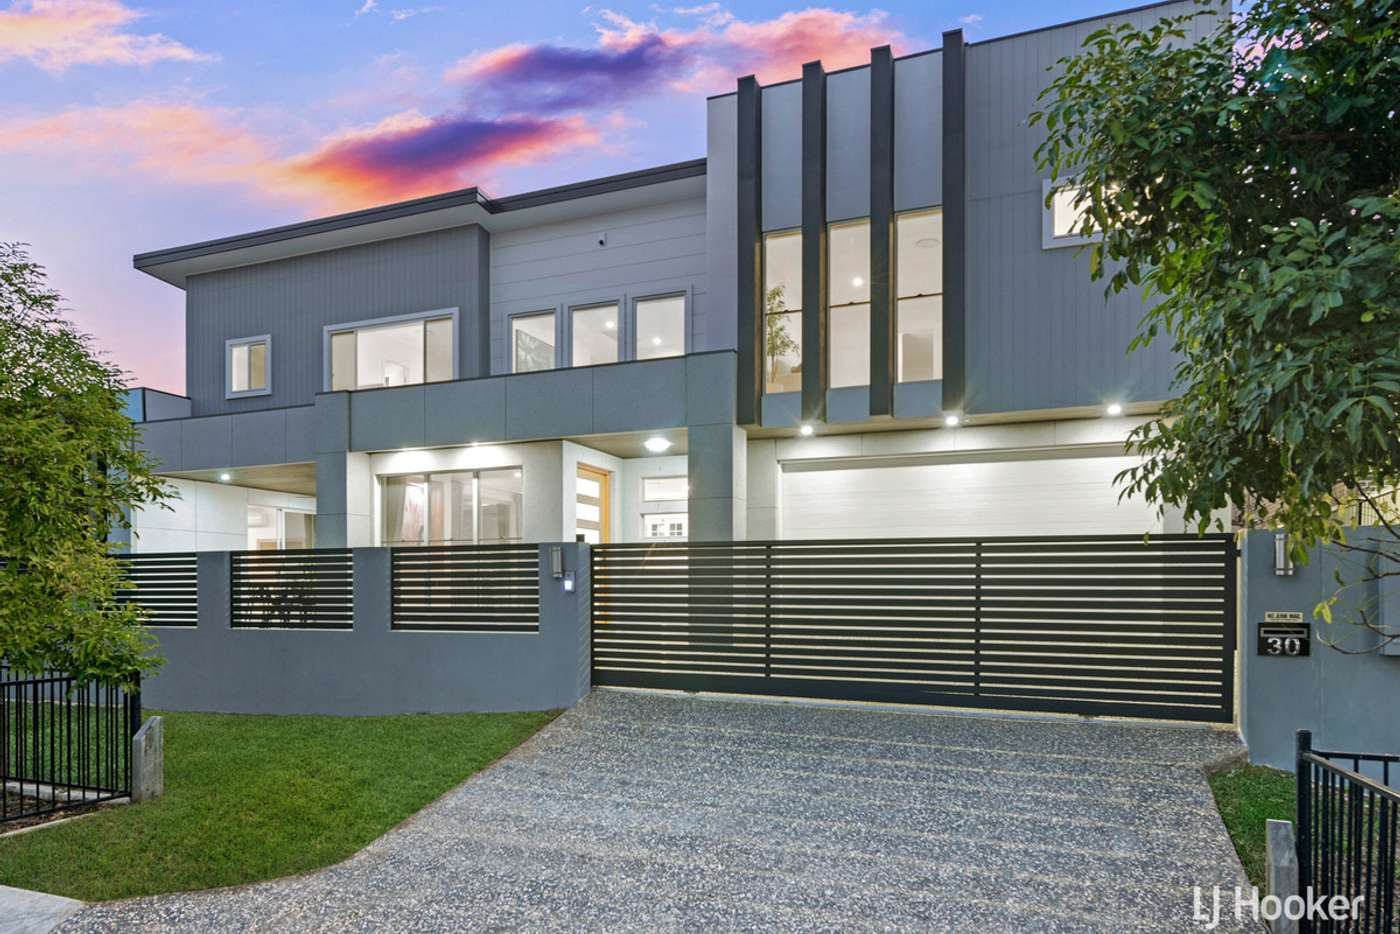 Main view of Homely house listing, 30 Caribbea Street, Kuraby QLD 4112